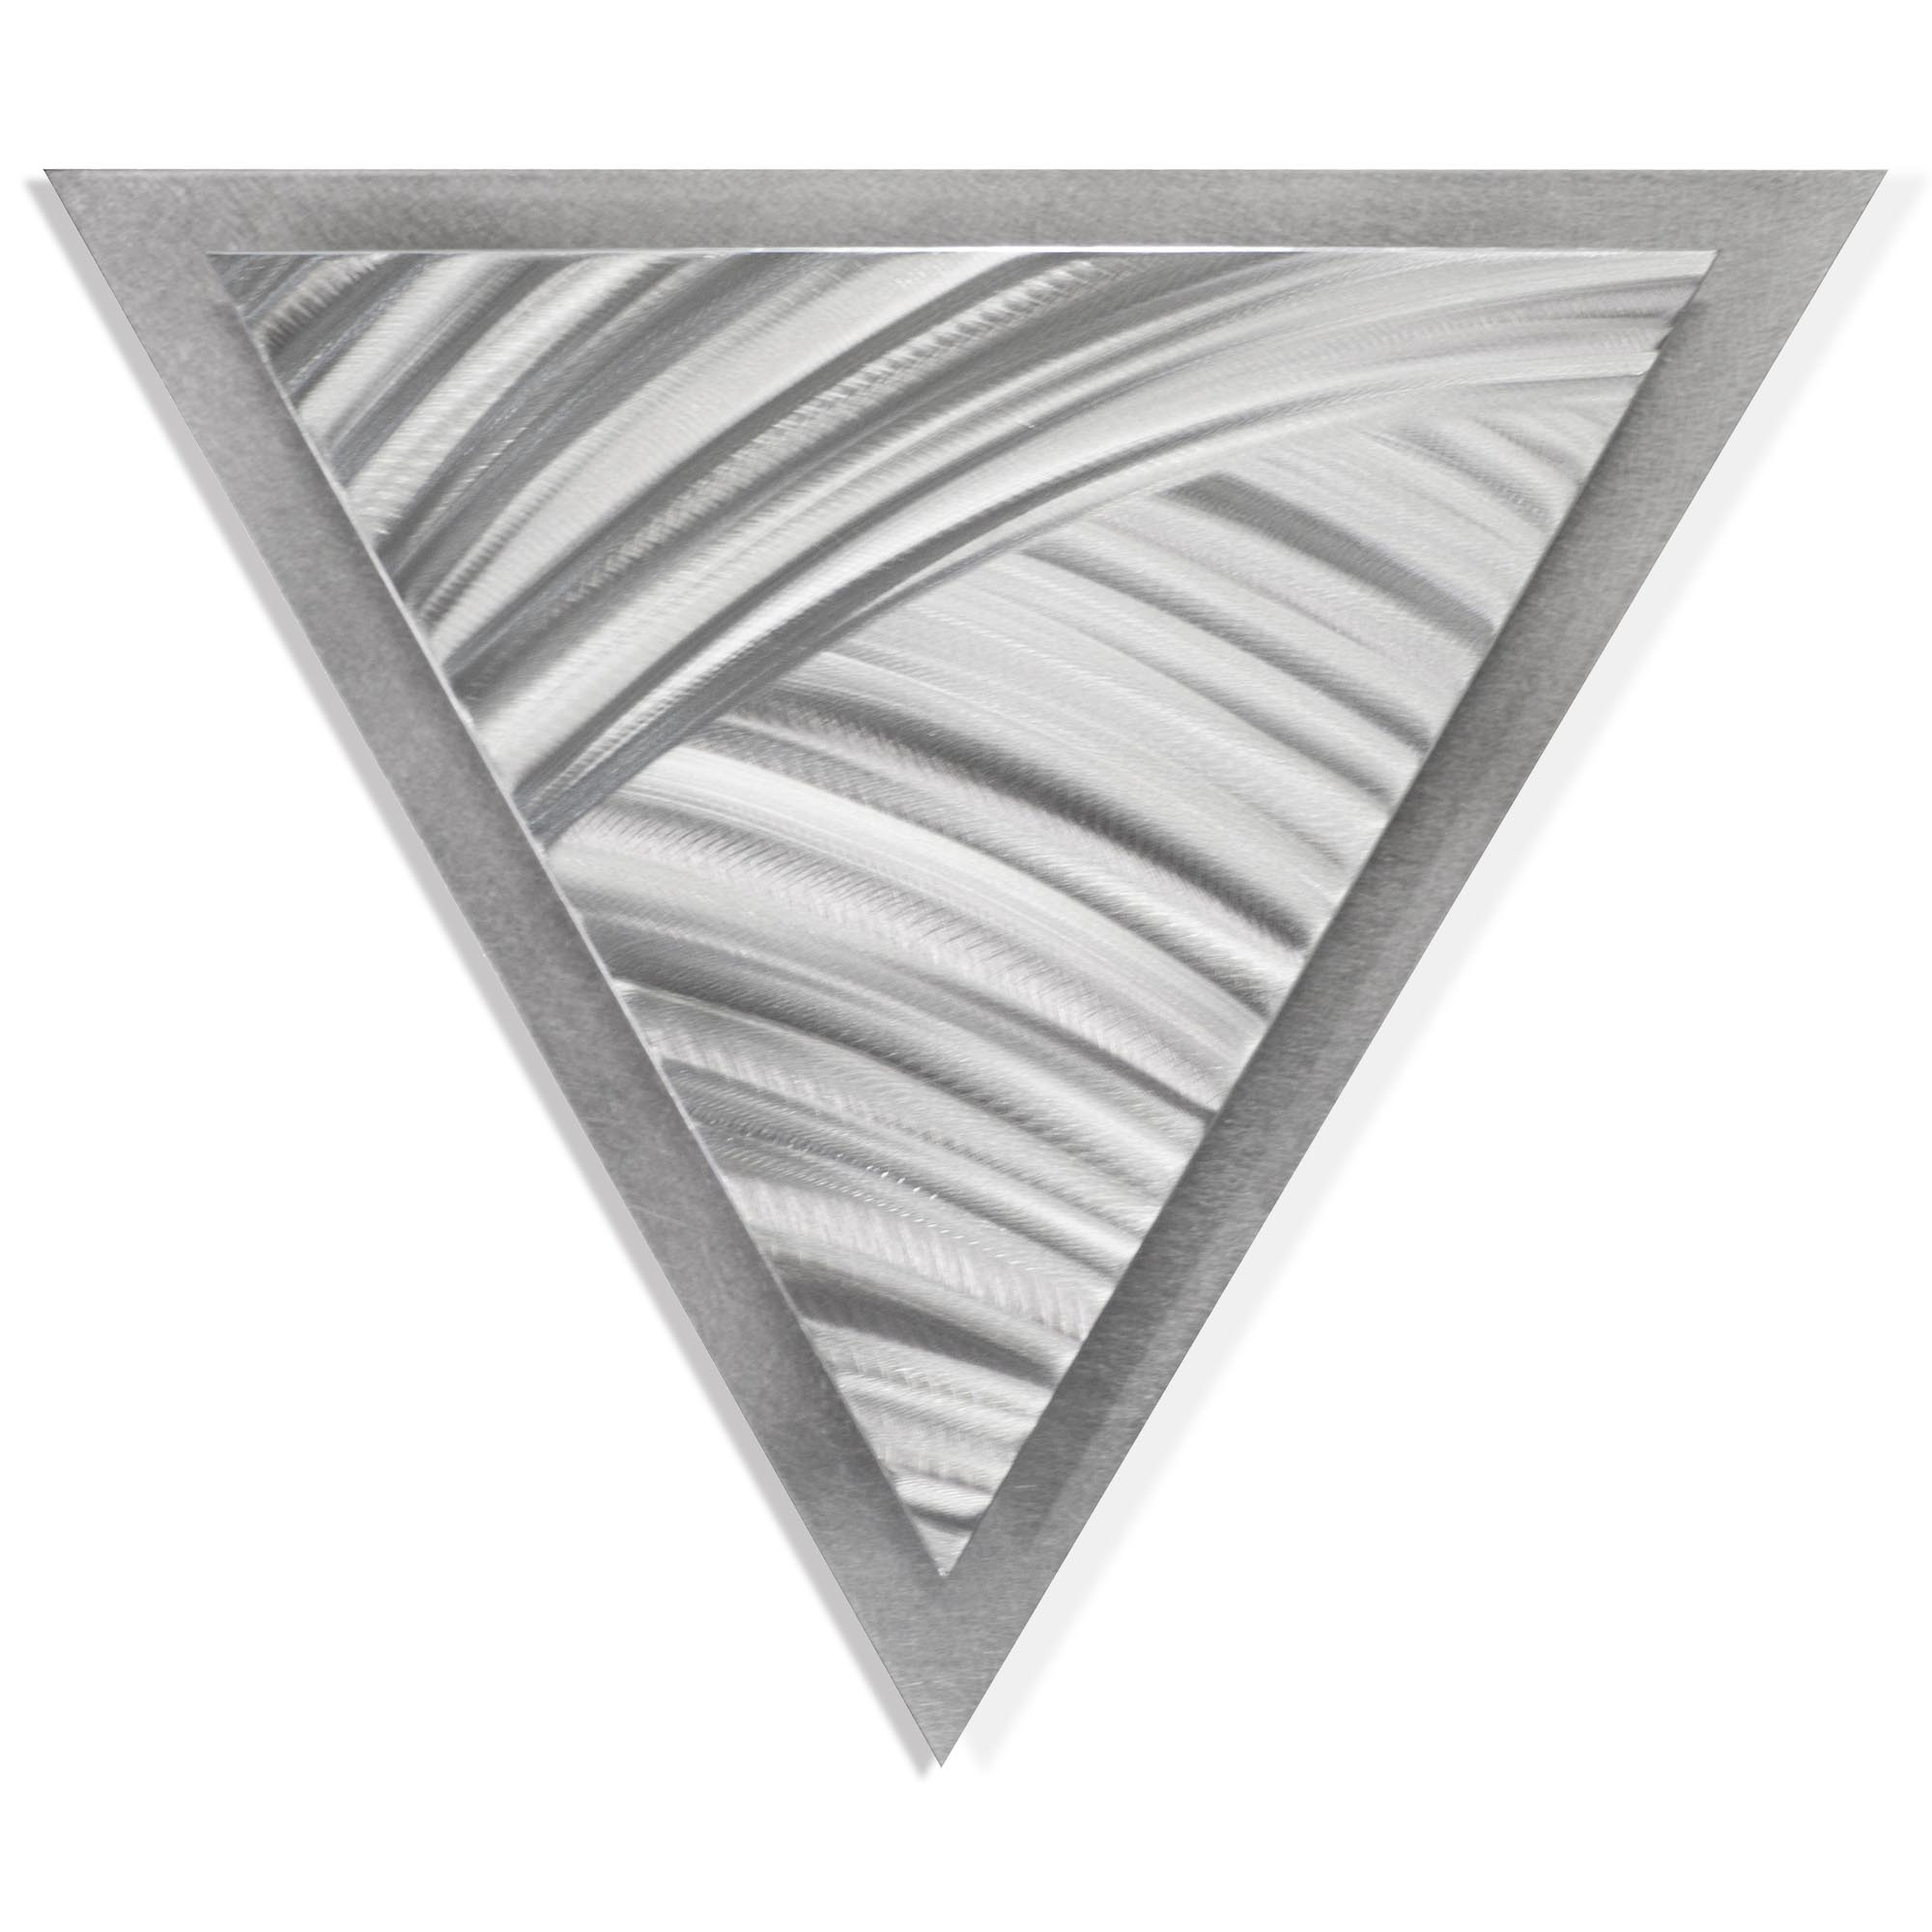 Helena Martin 'Folded Angle' 15in x 13in Modern Metal Art on Ground Metal